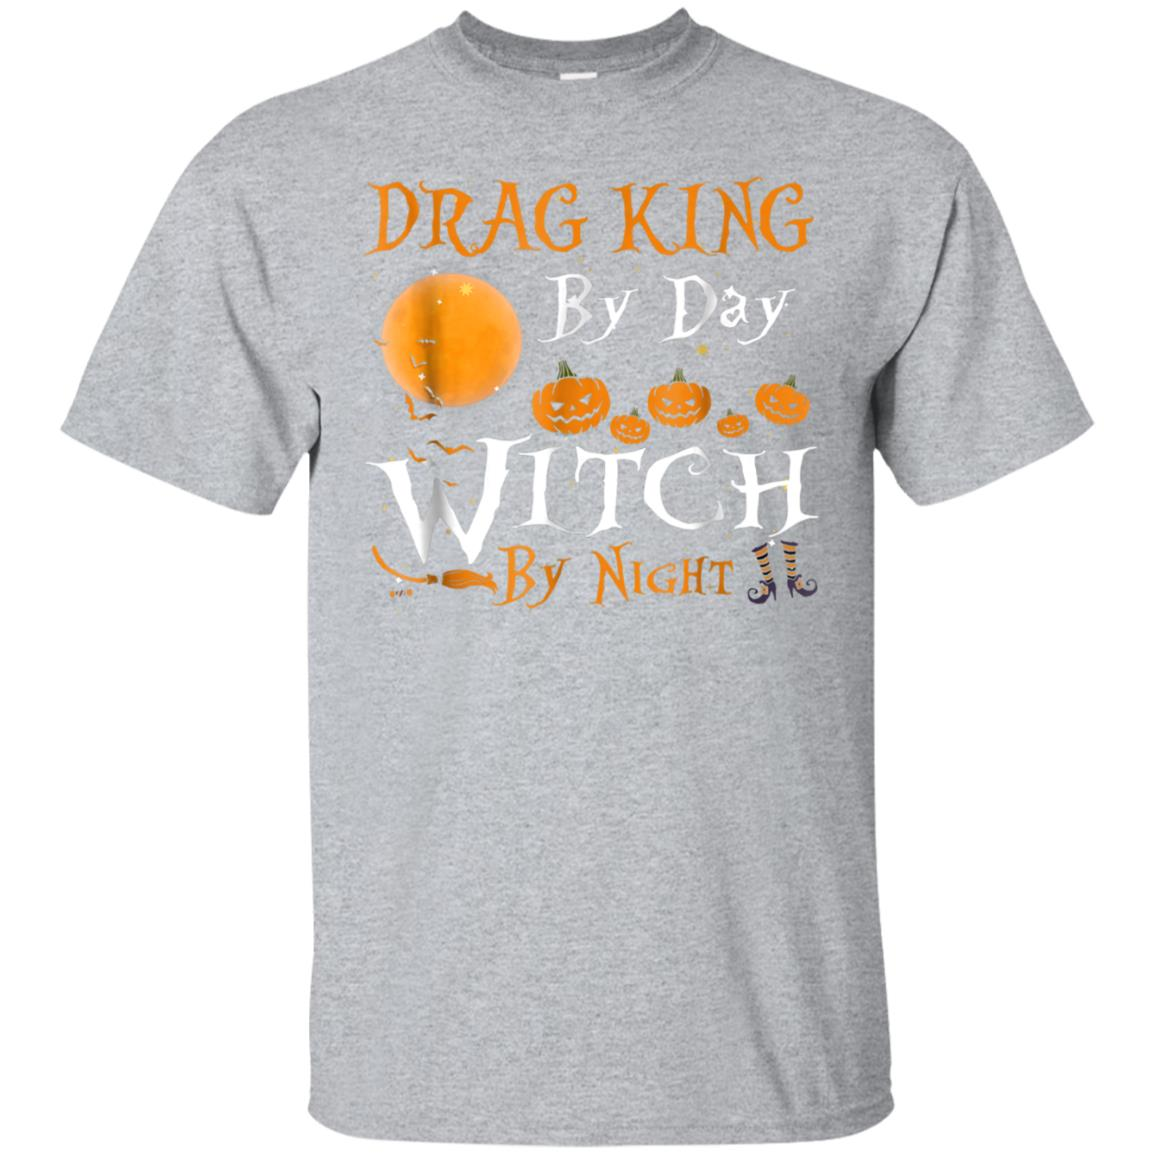 DRAG KING By Day Witch By Night Shirt Halloween Costume 99promocode